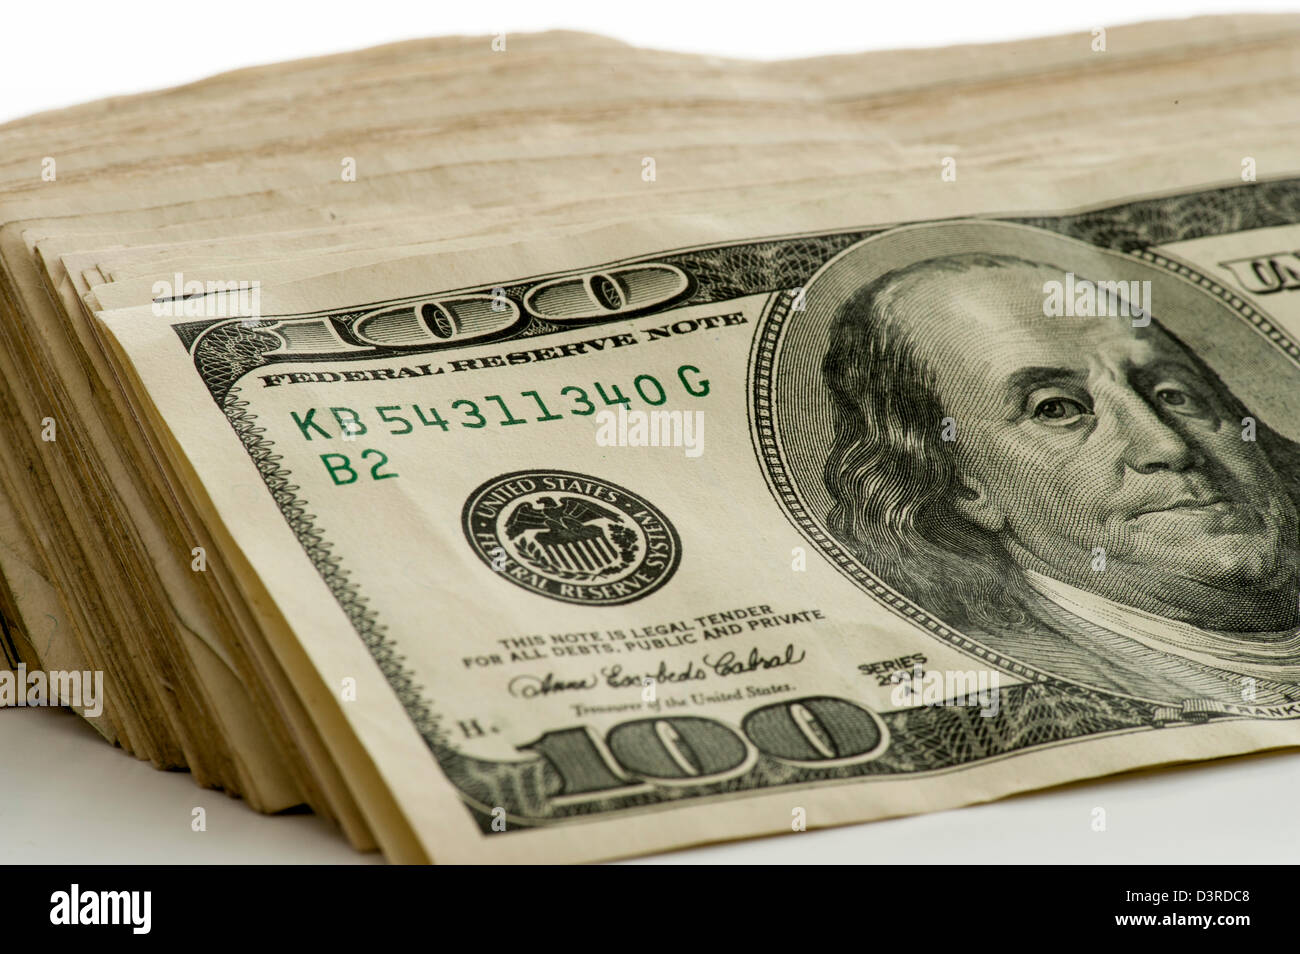 closeup view of stack of US $100 bills money - Stock Image